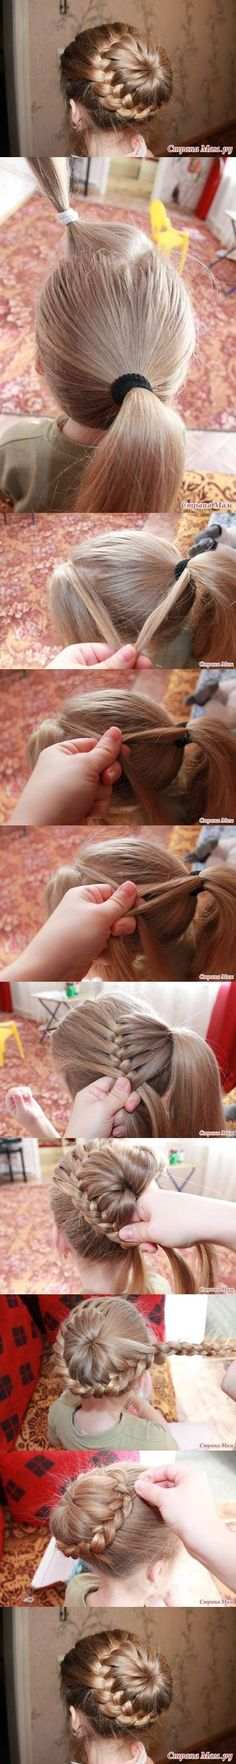 So cute! Gotta try it!!!!